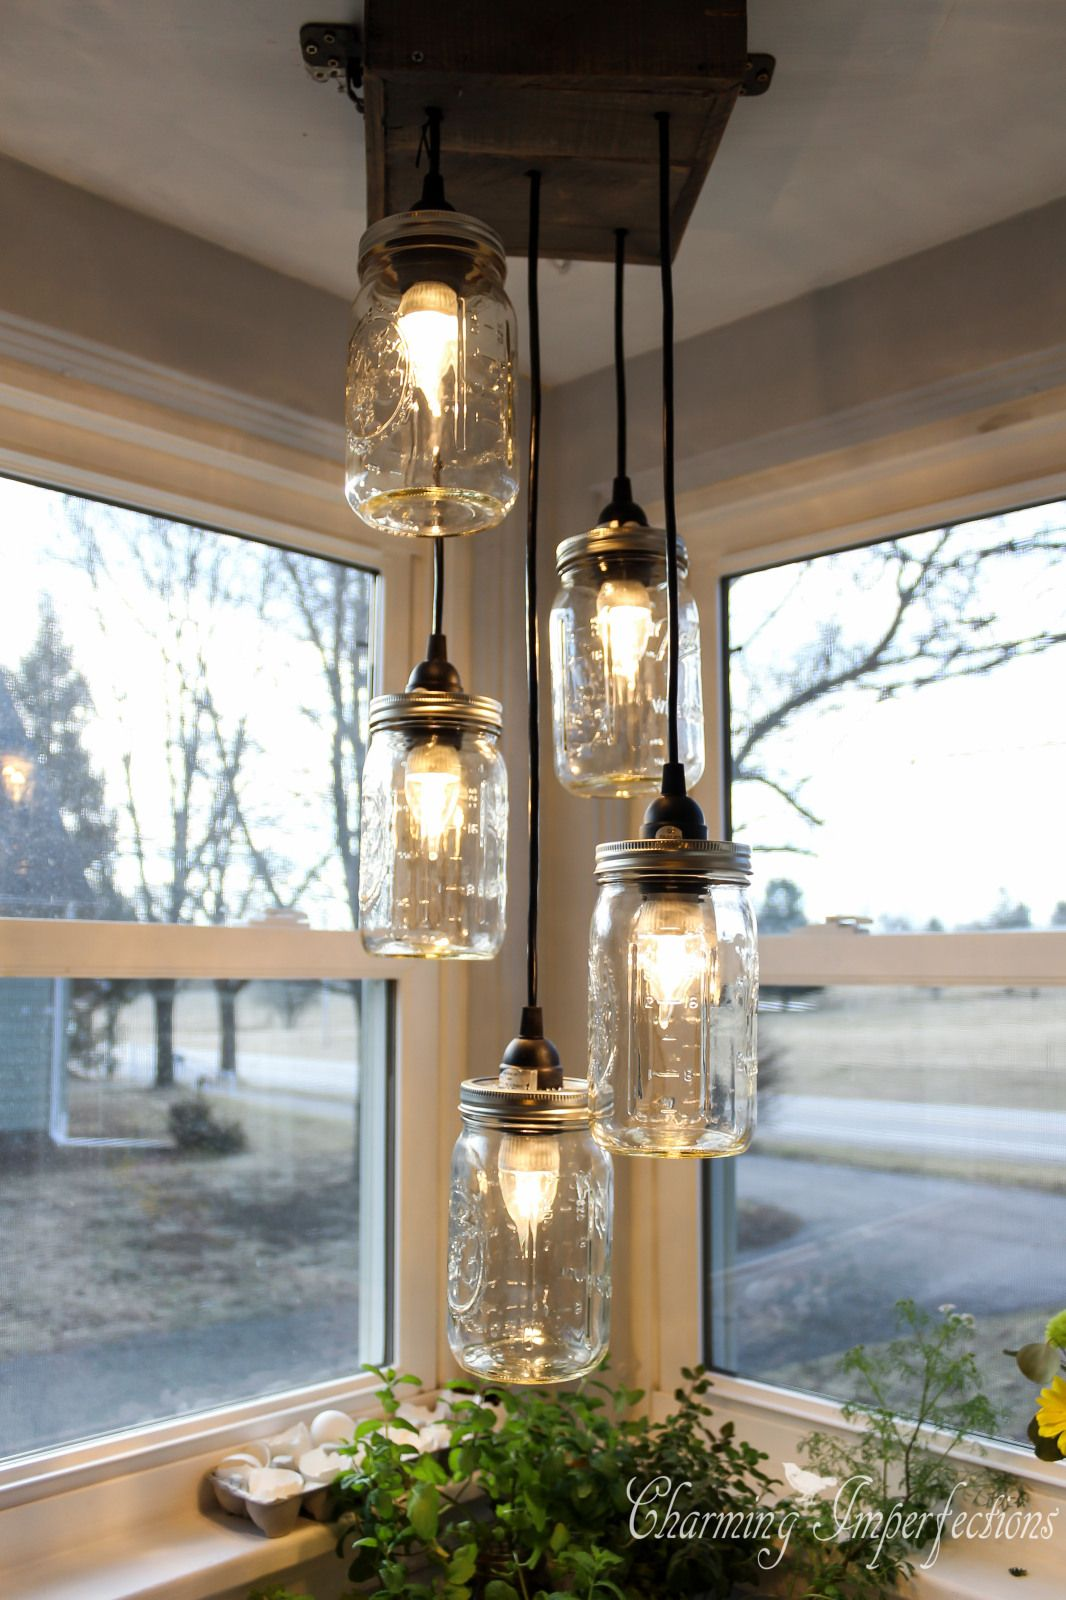 Mason jar chandelier 16 lighting pinterest mason jar diy how to make a mason jar pendant light fixture this is a clever easy and inexpensive project that shows each step in making a kitchen light fixture arubaitofo Gallery